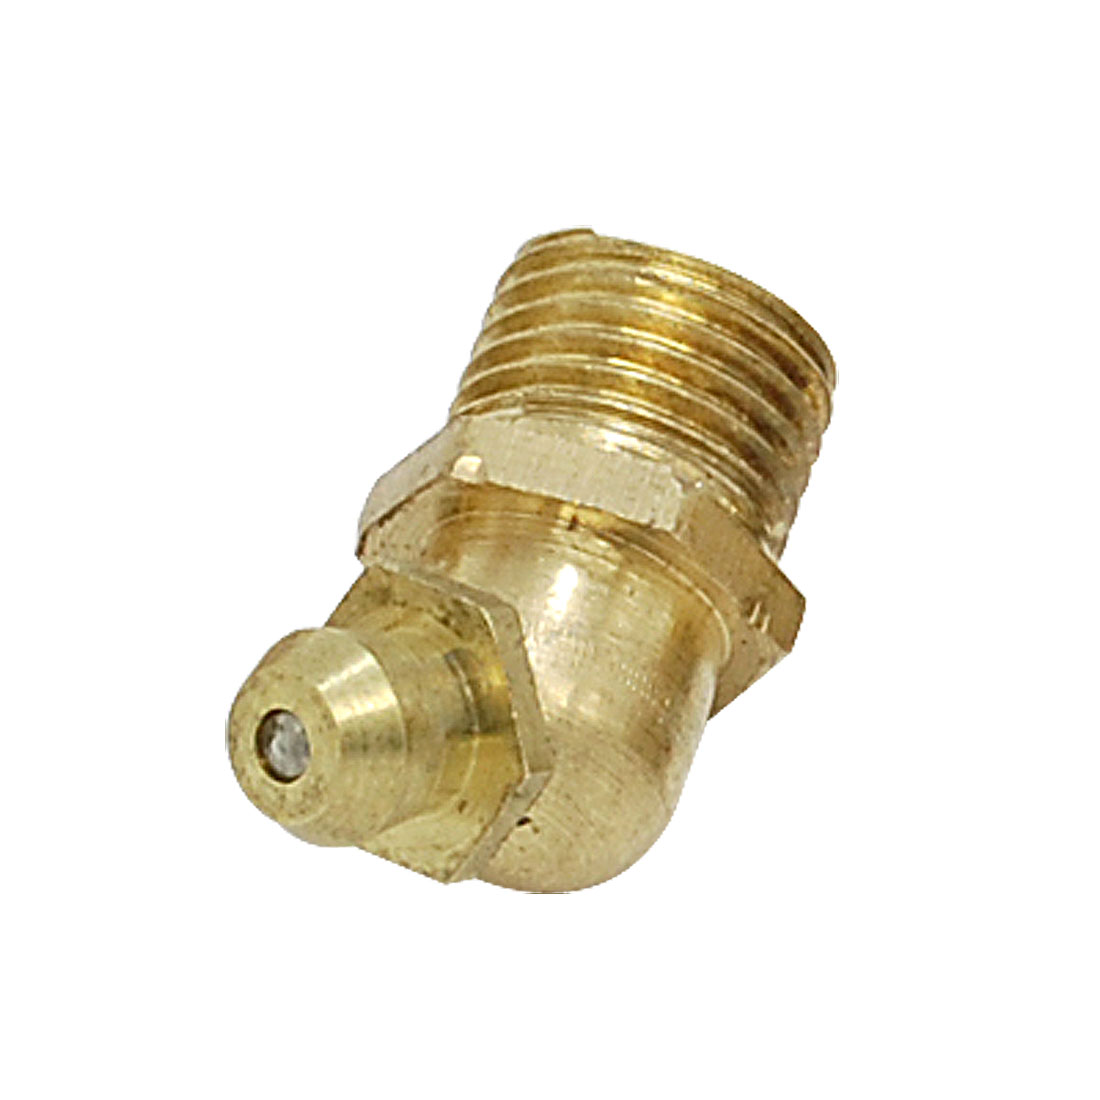 Angled 10 x 1.8mm Brass Grease Nipples 10pcs